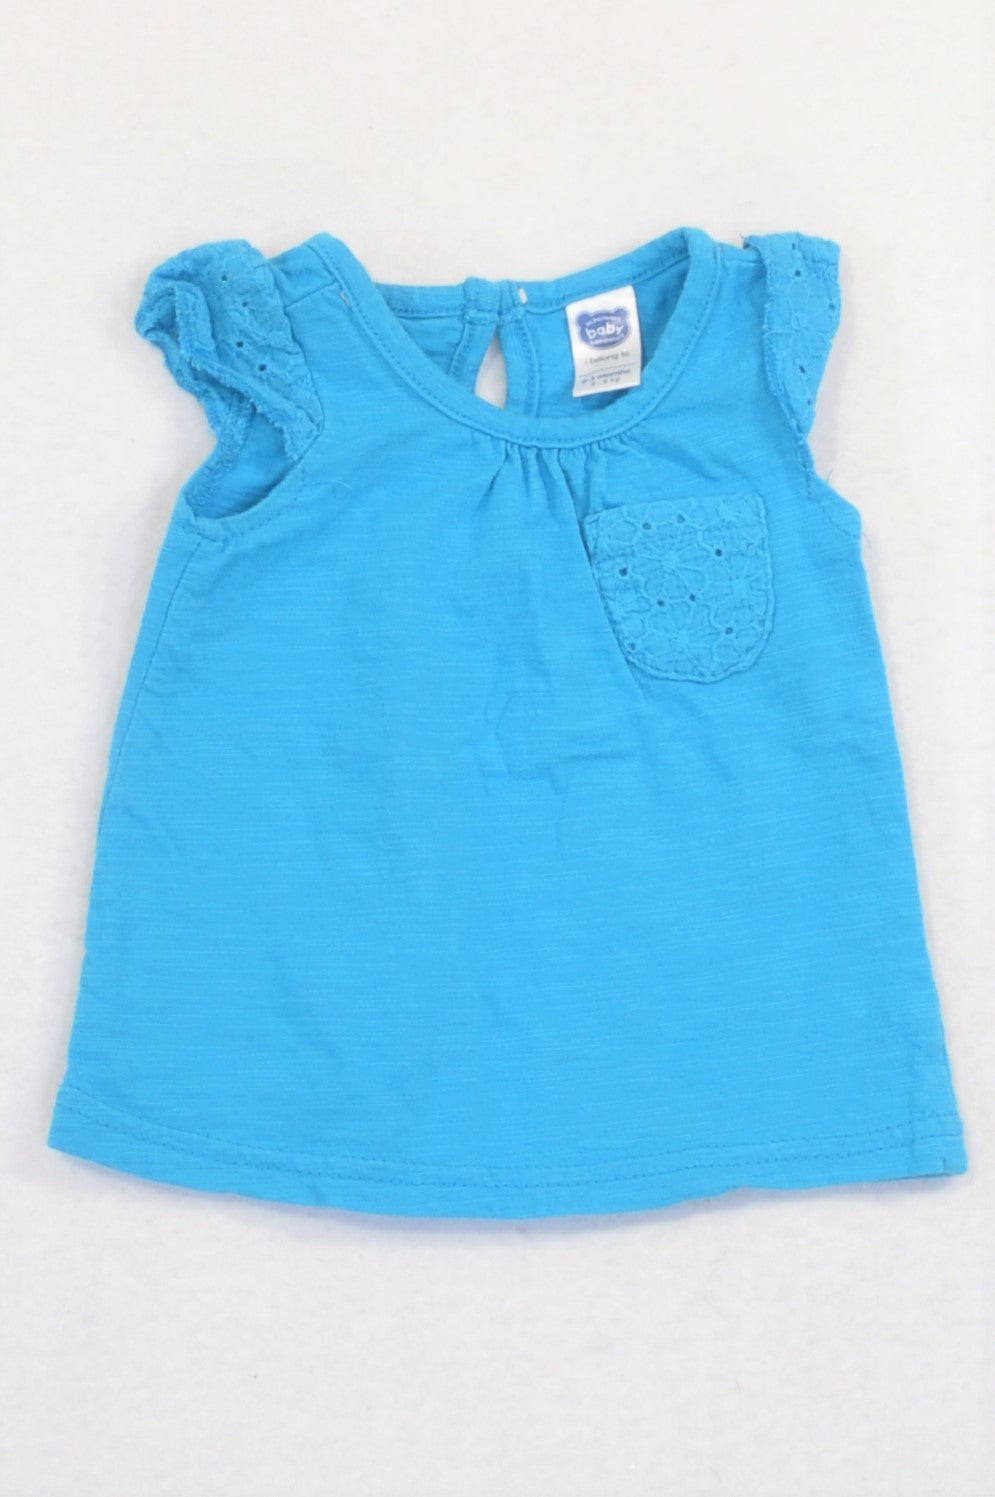 Ackermans Bright Blue Embroidered Pocket & Sleeve T-shirt Girls 0-3 months